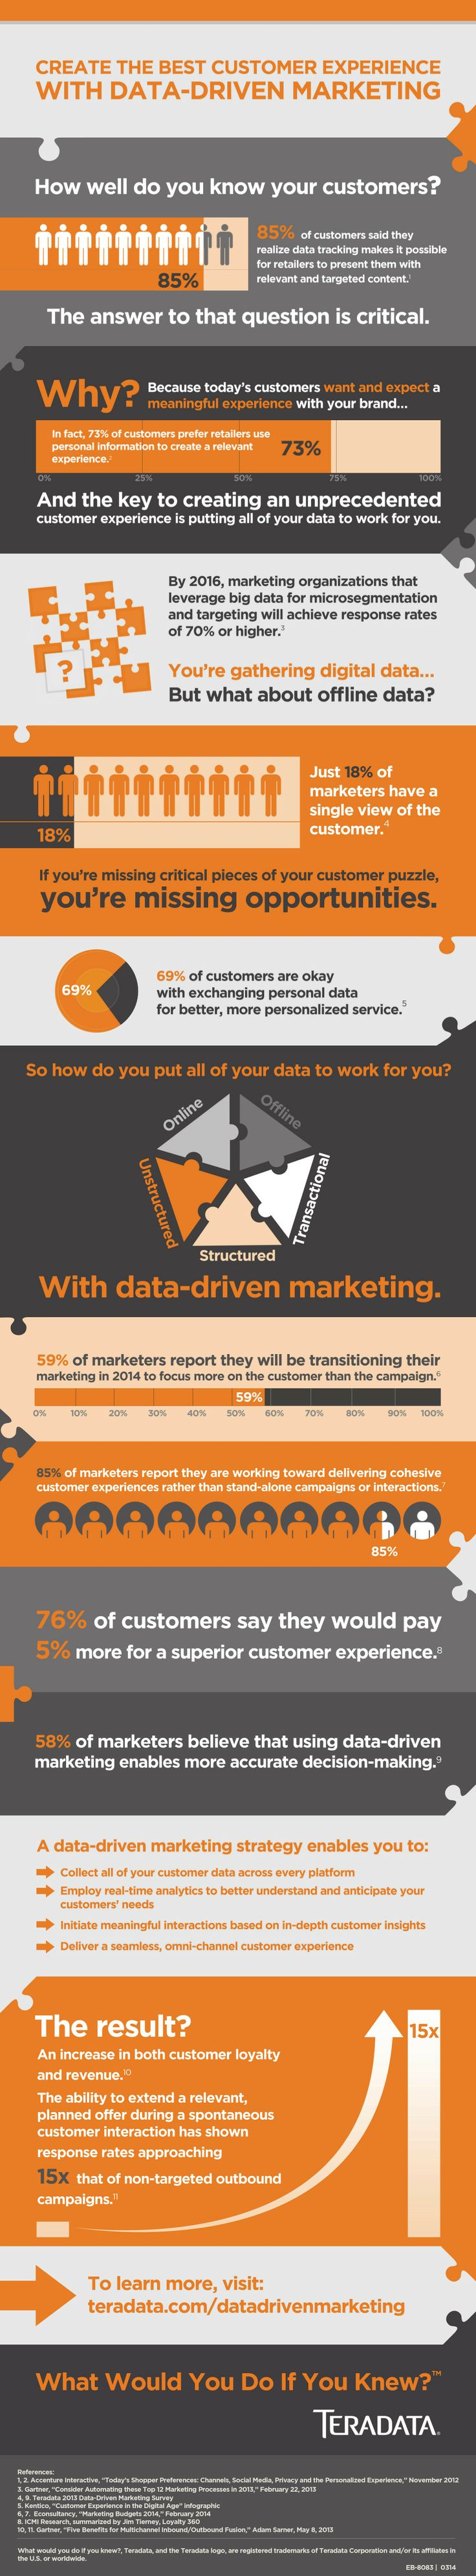 #infographic: Create the best customer experience with data driven #marketing